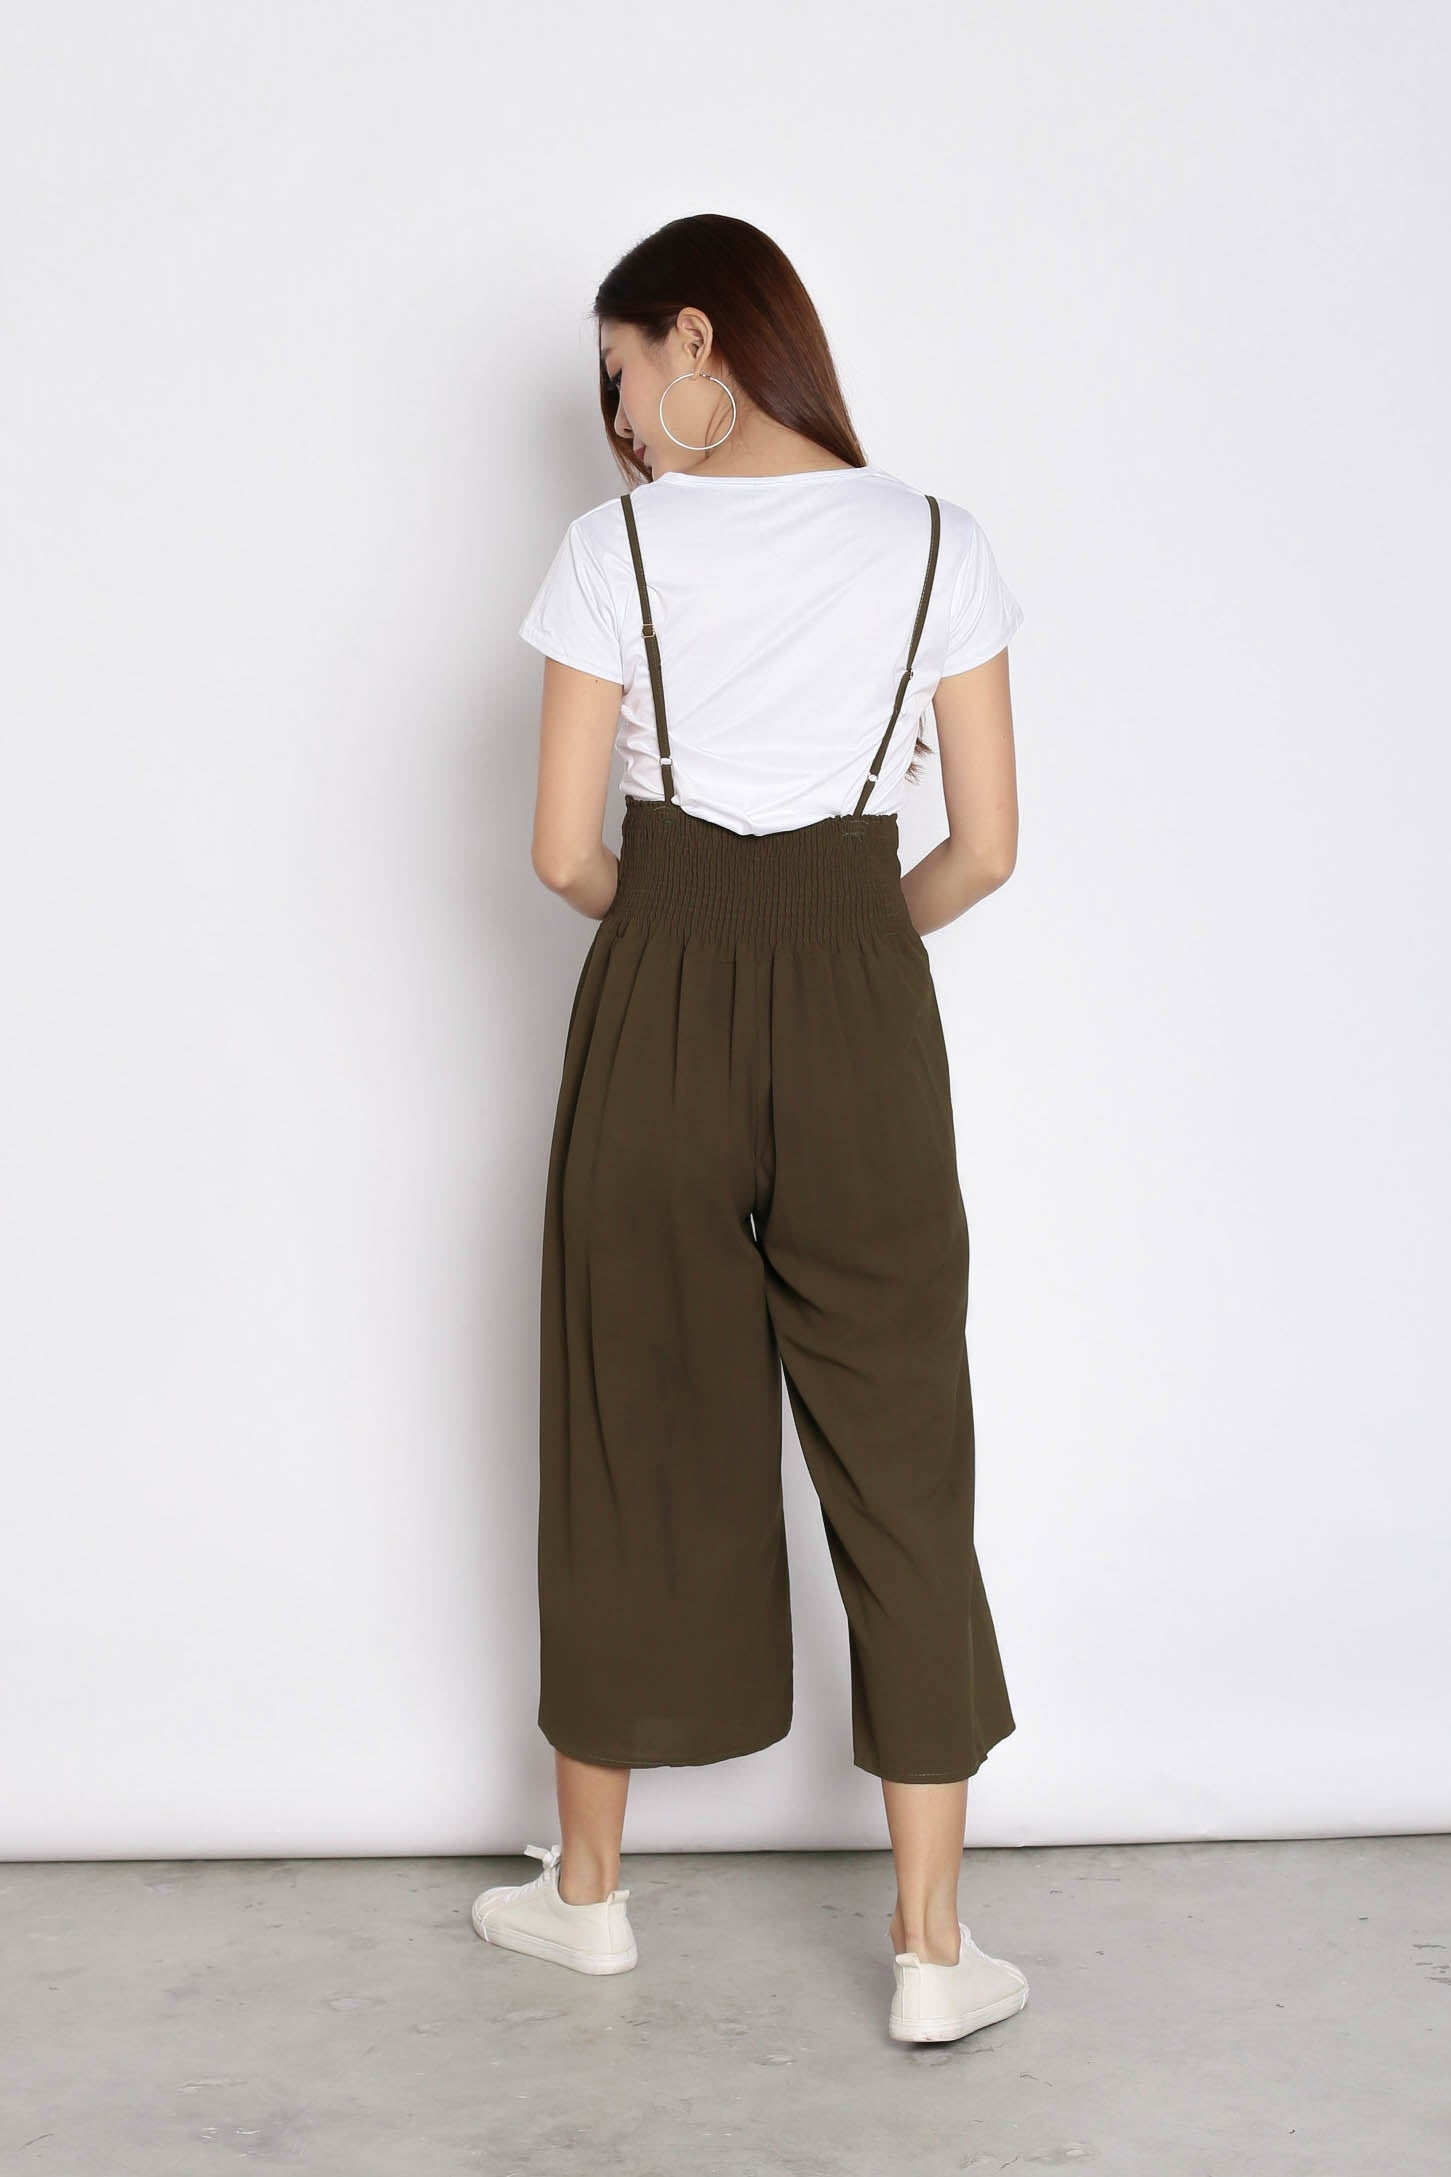 MERLY DUNGAREE JUMPERUIT SET IN OLIVE